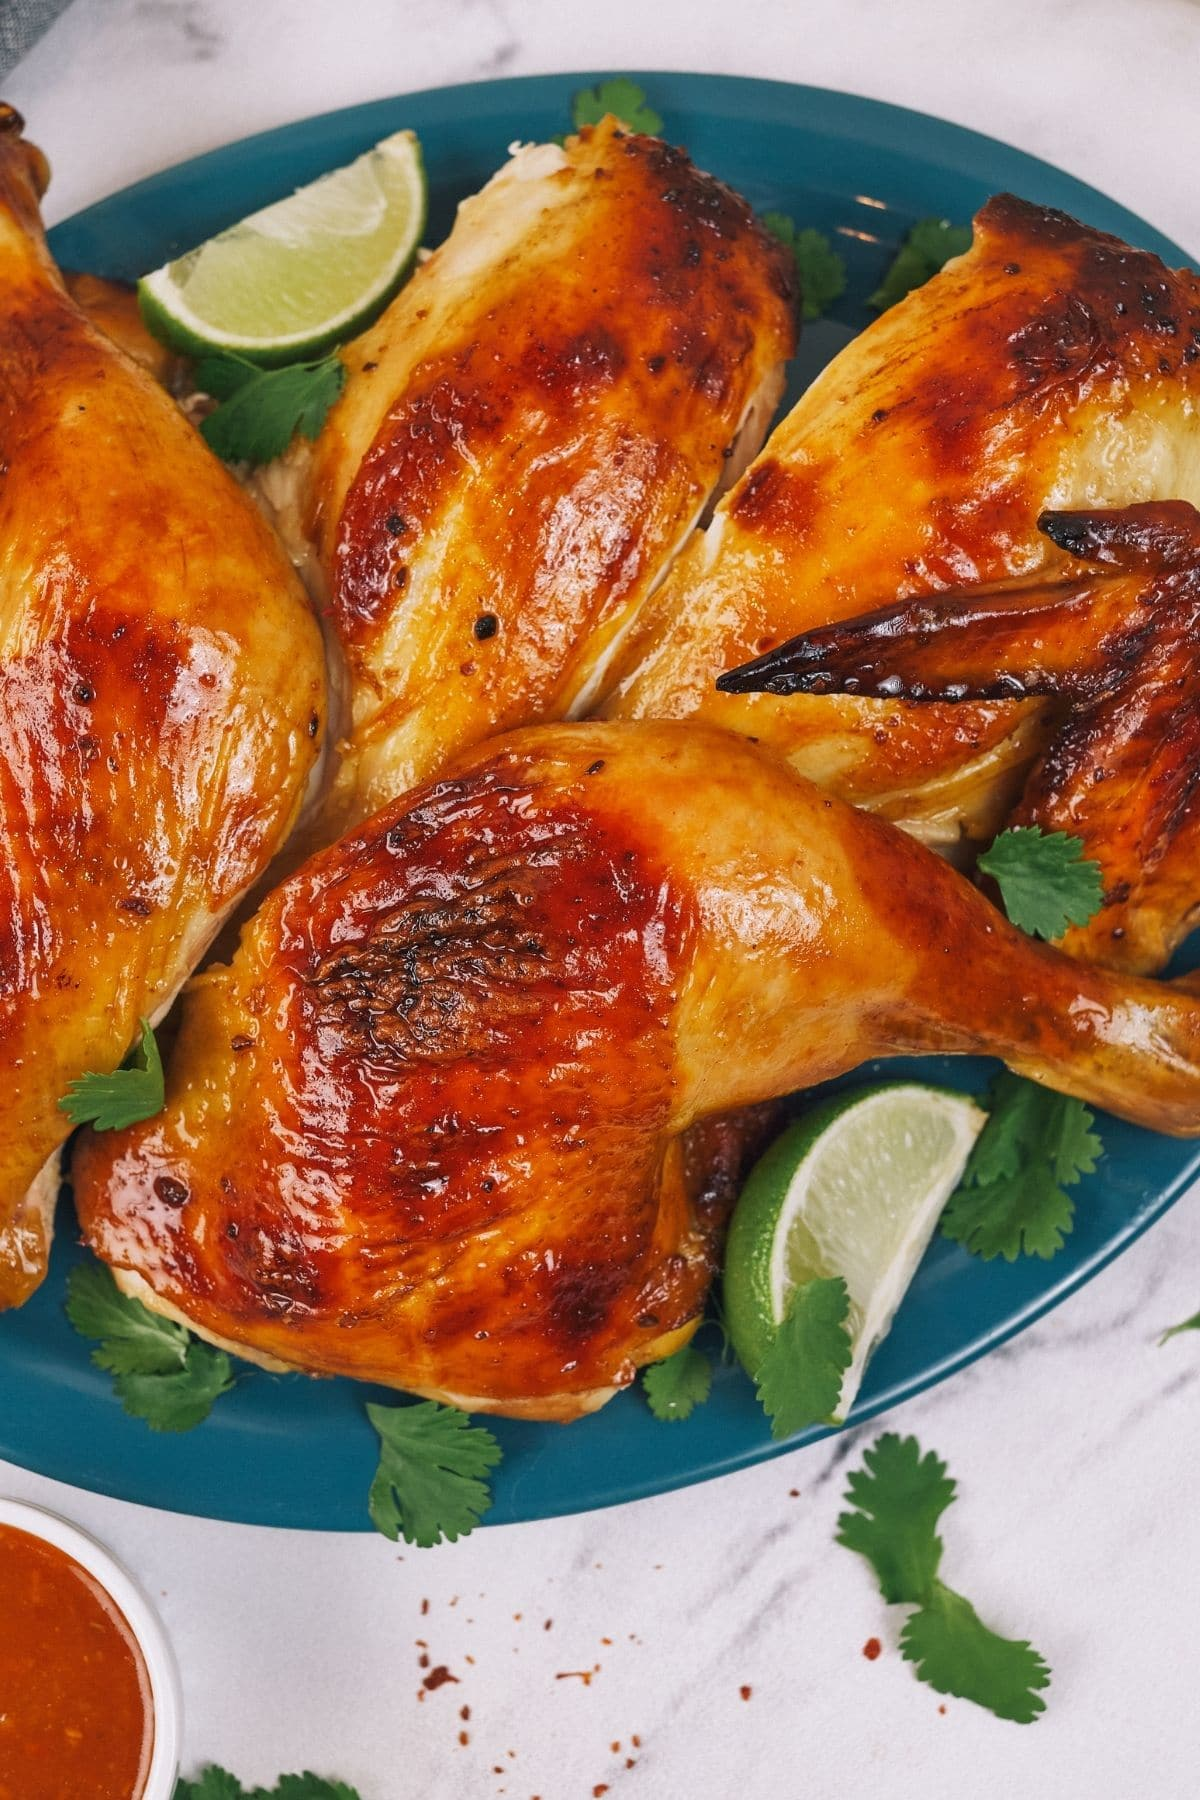 Roasted chicken on teal plate with lime wedge on white table